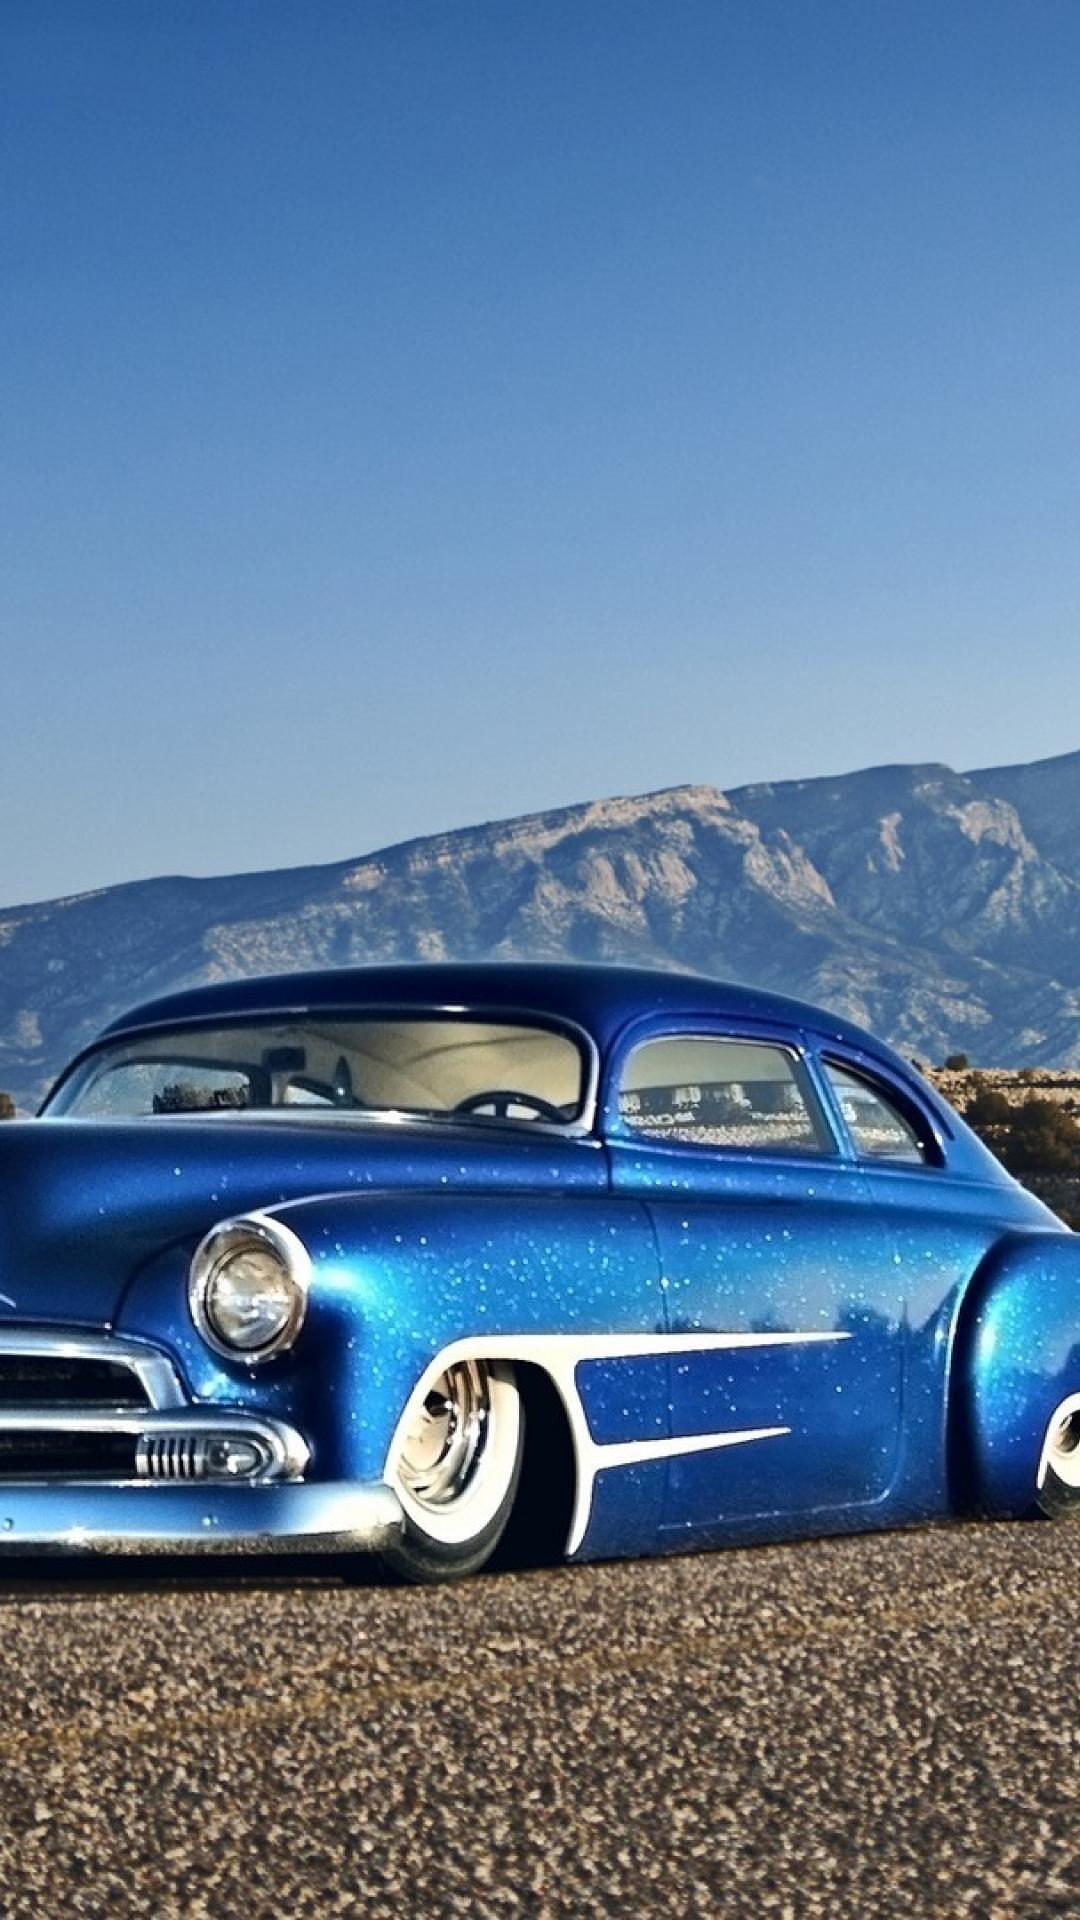 Chevy Classic Cars Wallpapers